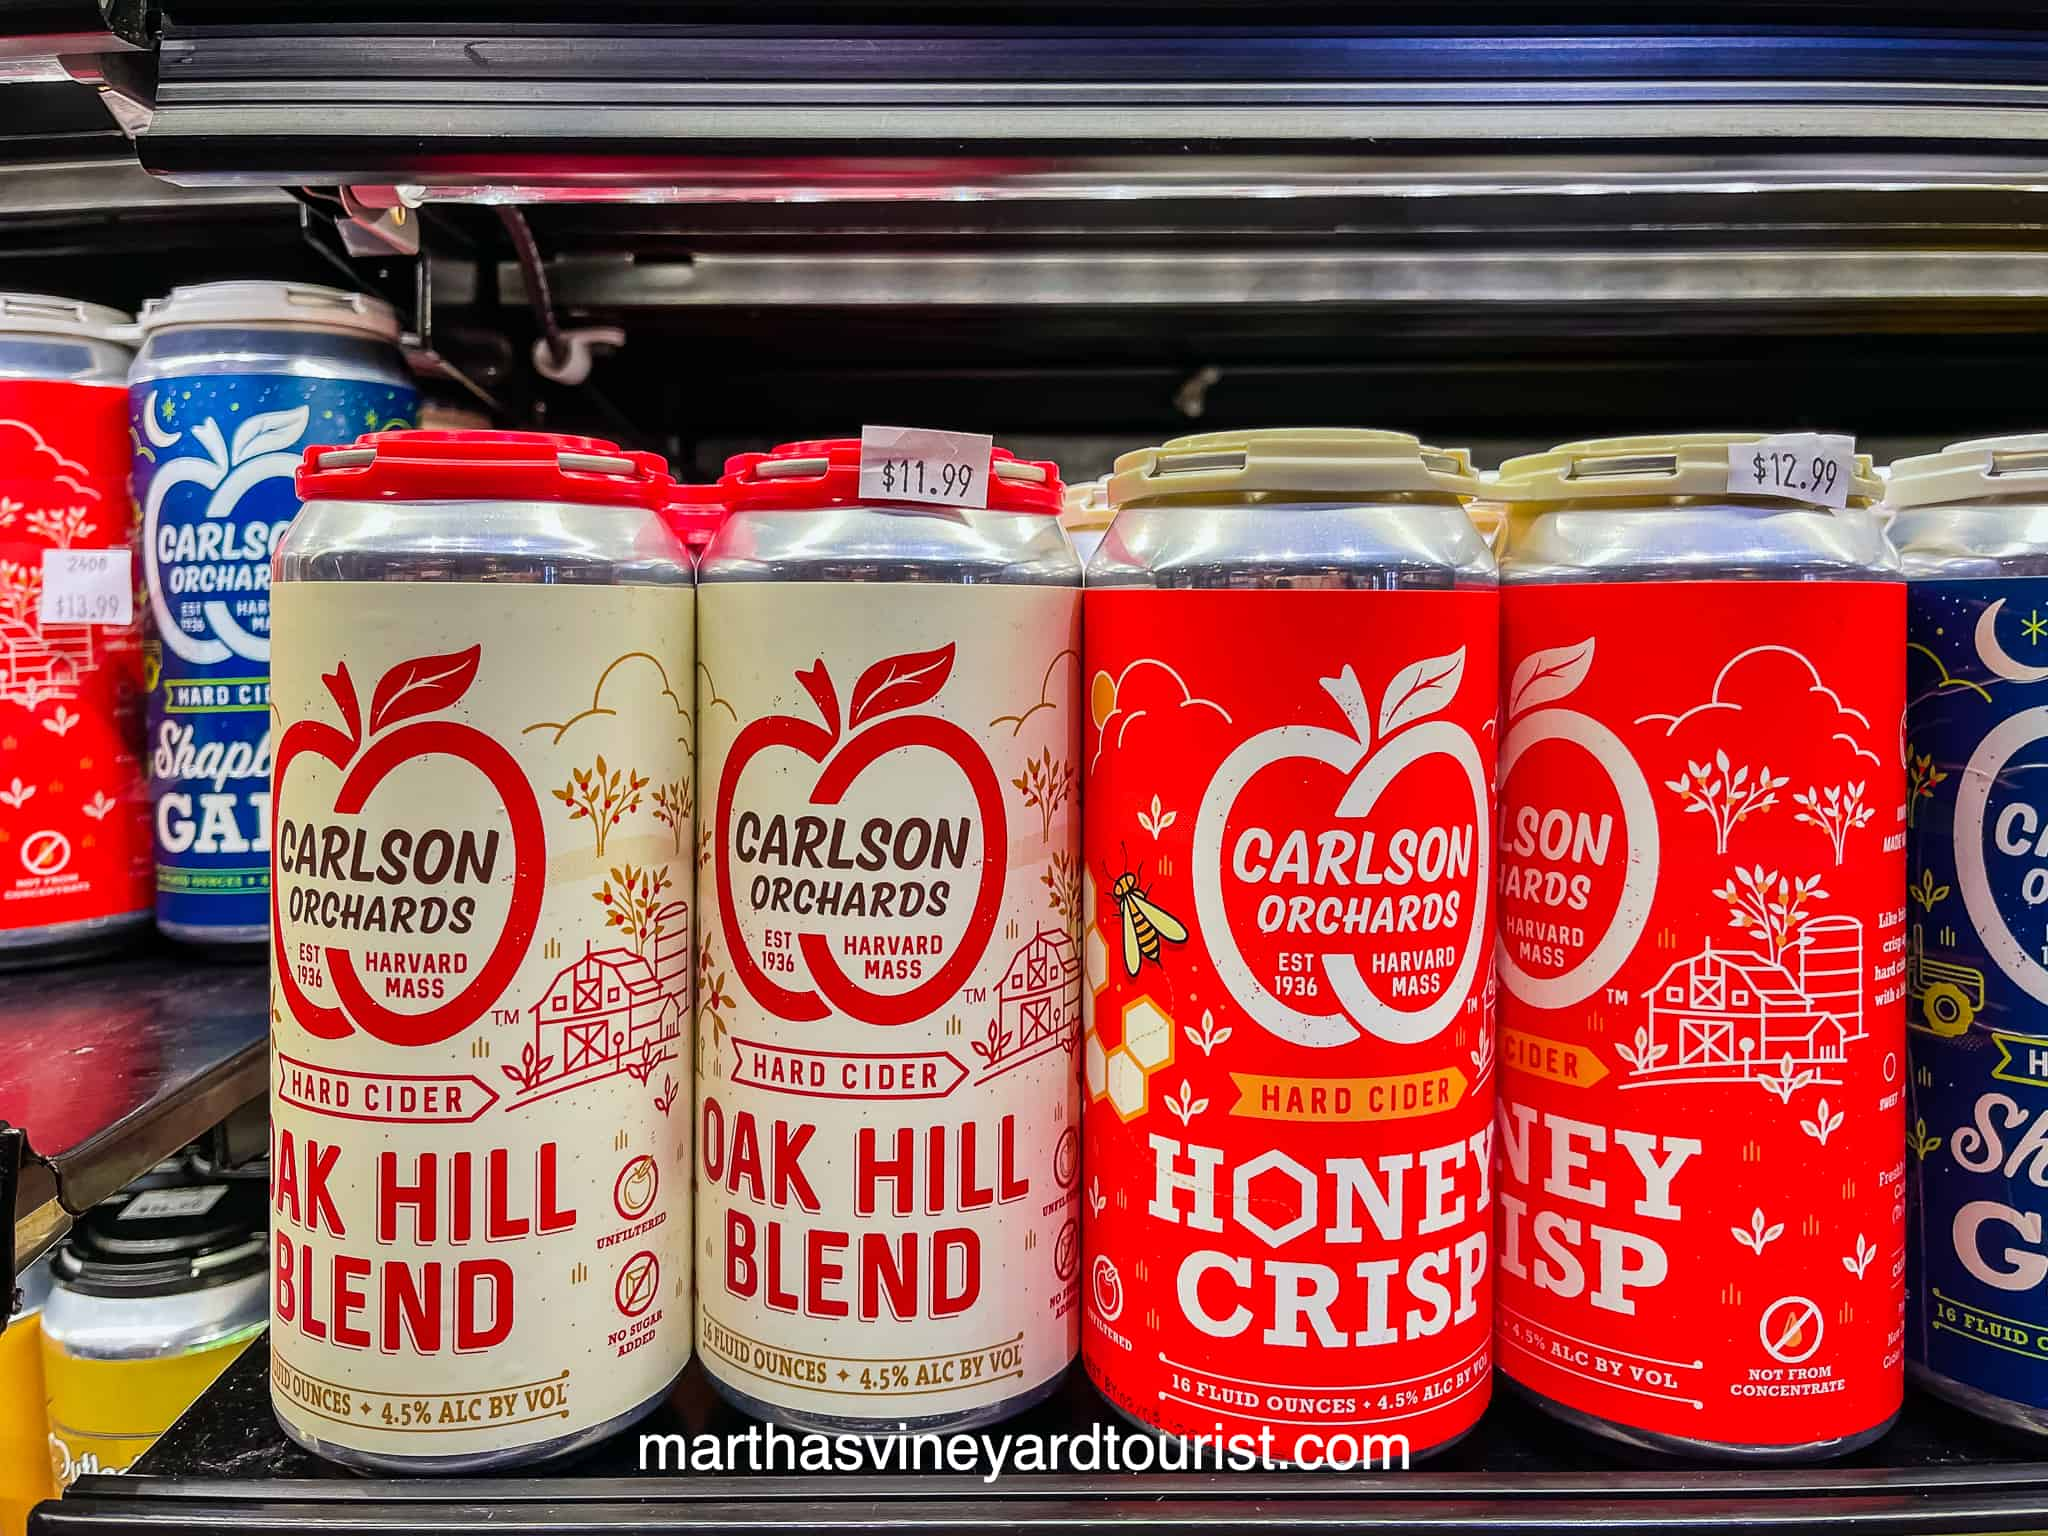 Carlson Orchards hard cider cans for sale